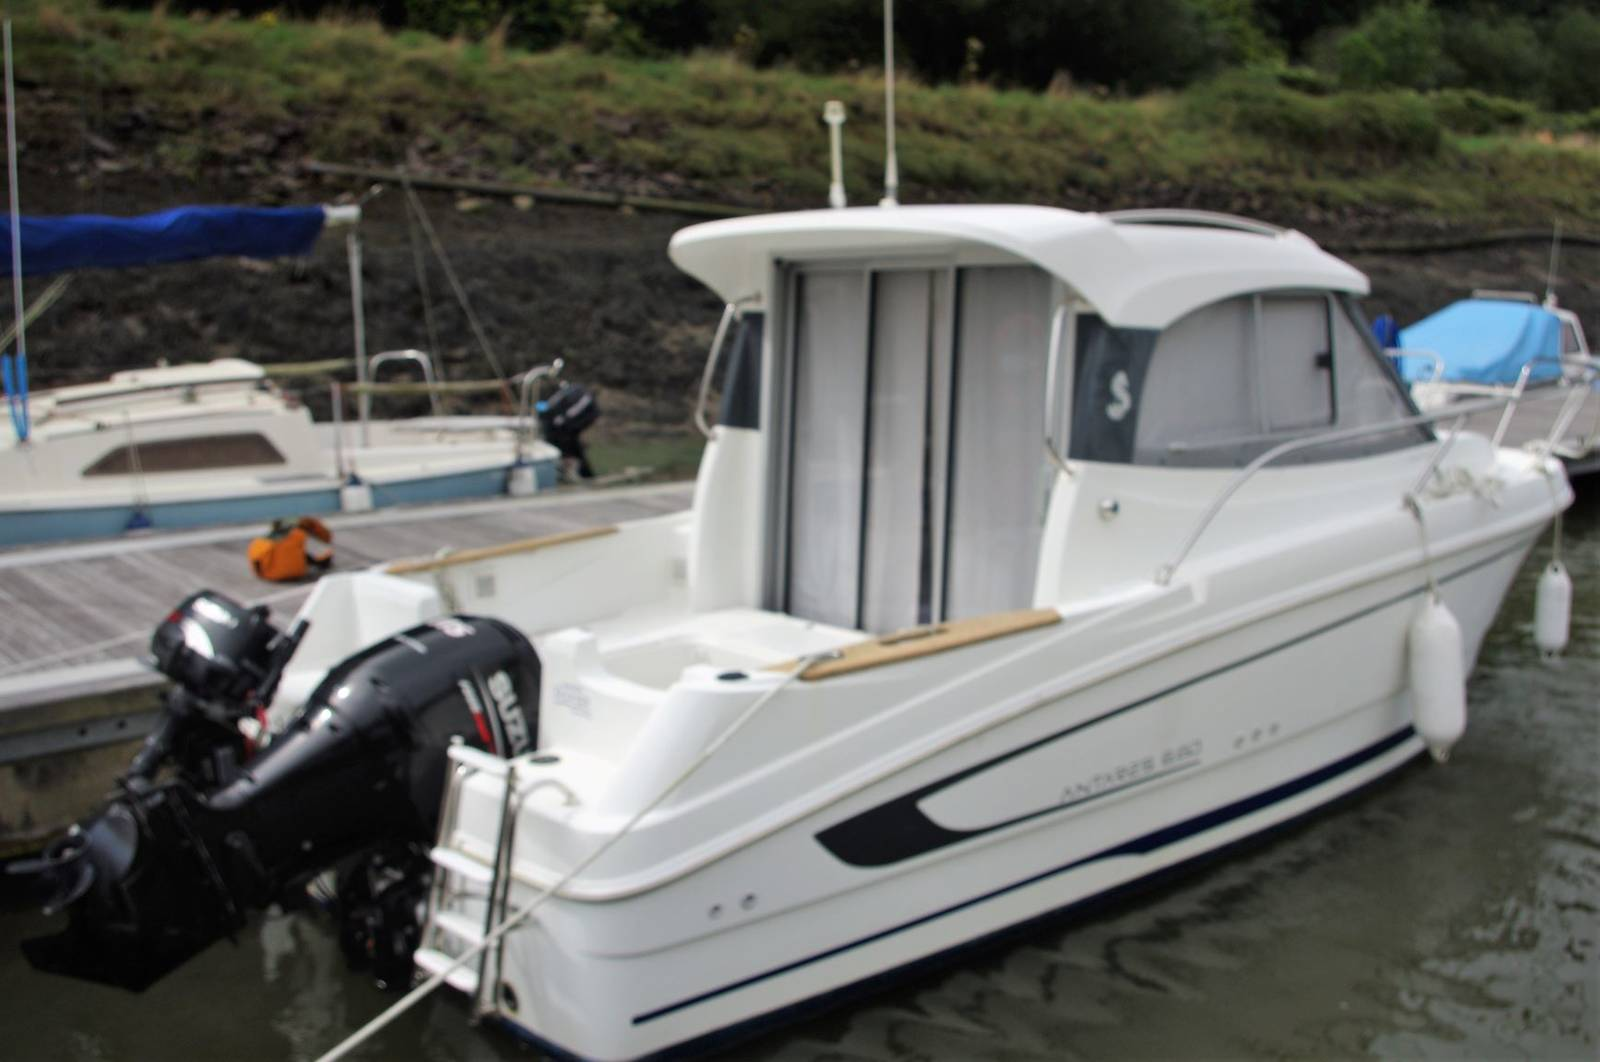 Beneteau Antares 680 For Sale. Yachts.co Neyland SA73 1PY. Call 01646602500 Sports Fisher